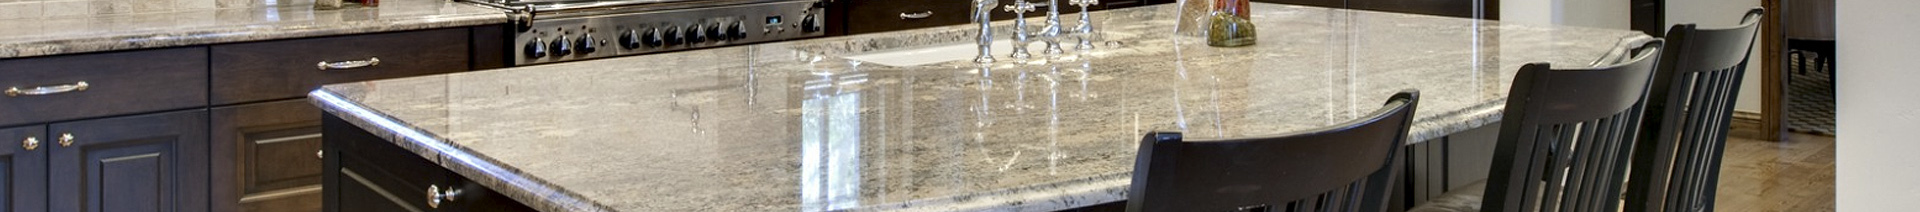 san tx countertops countertop austin slider granite kitchen fox antonio counters